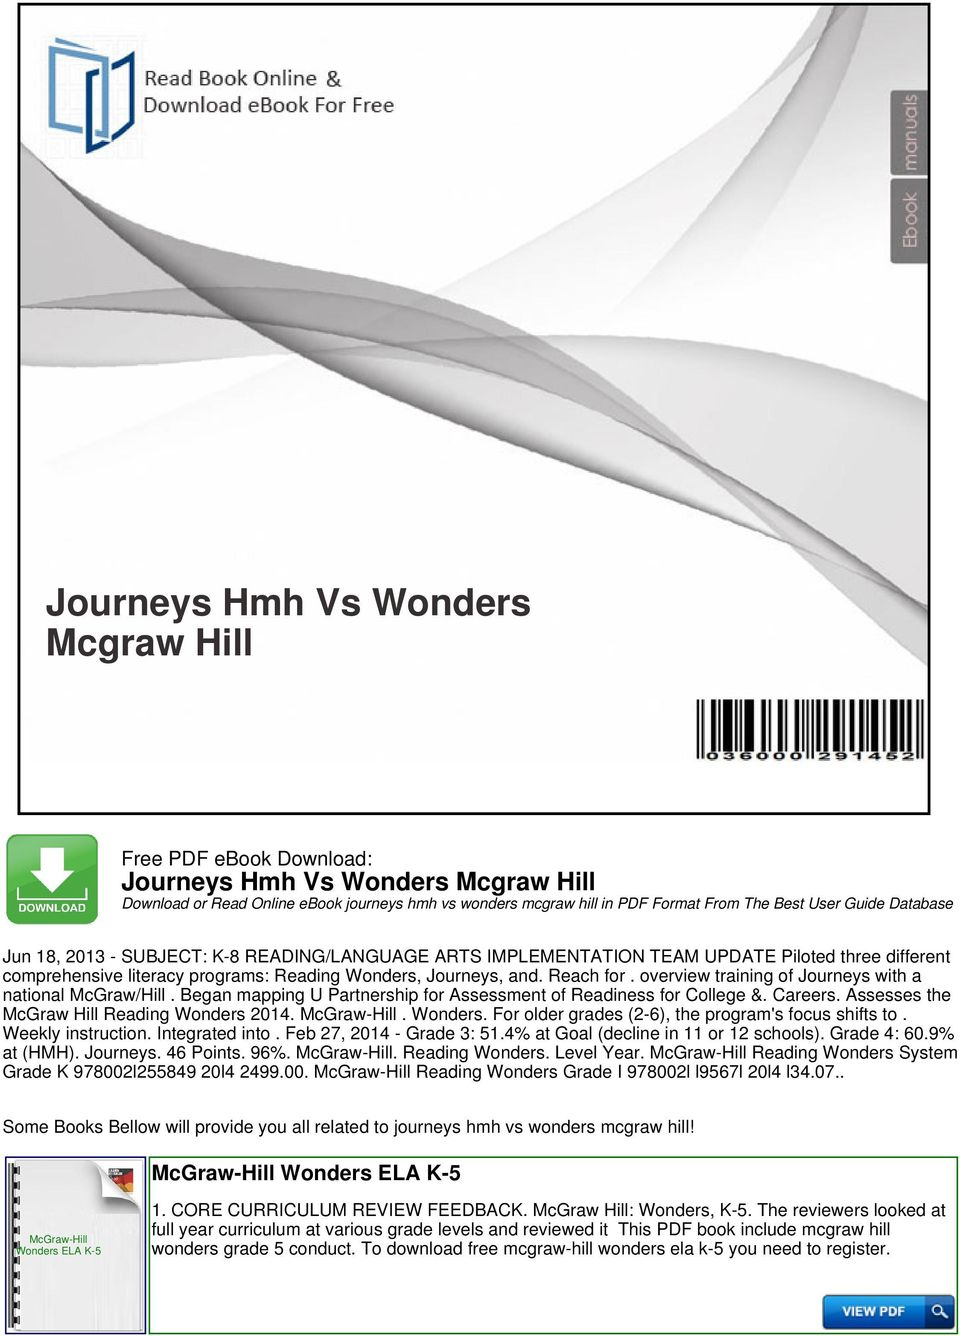 Journeys Hmh Vs Wonders Mcgraw Hill - PDF